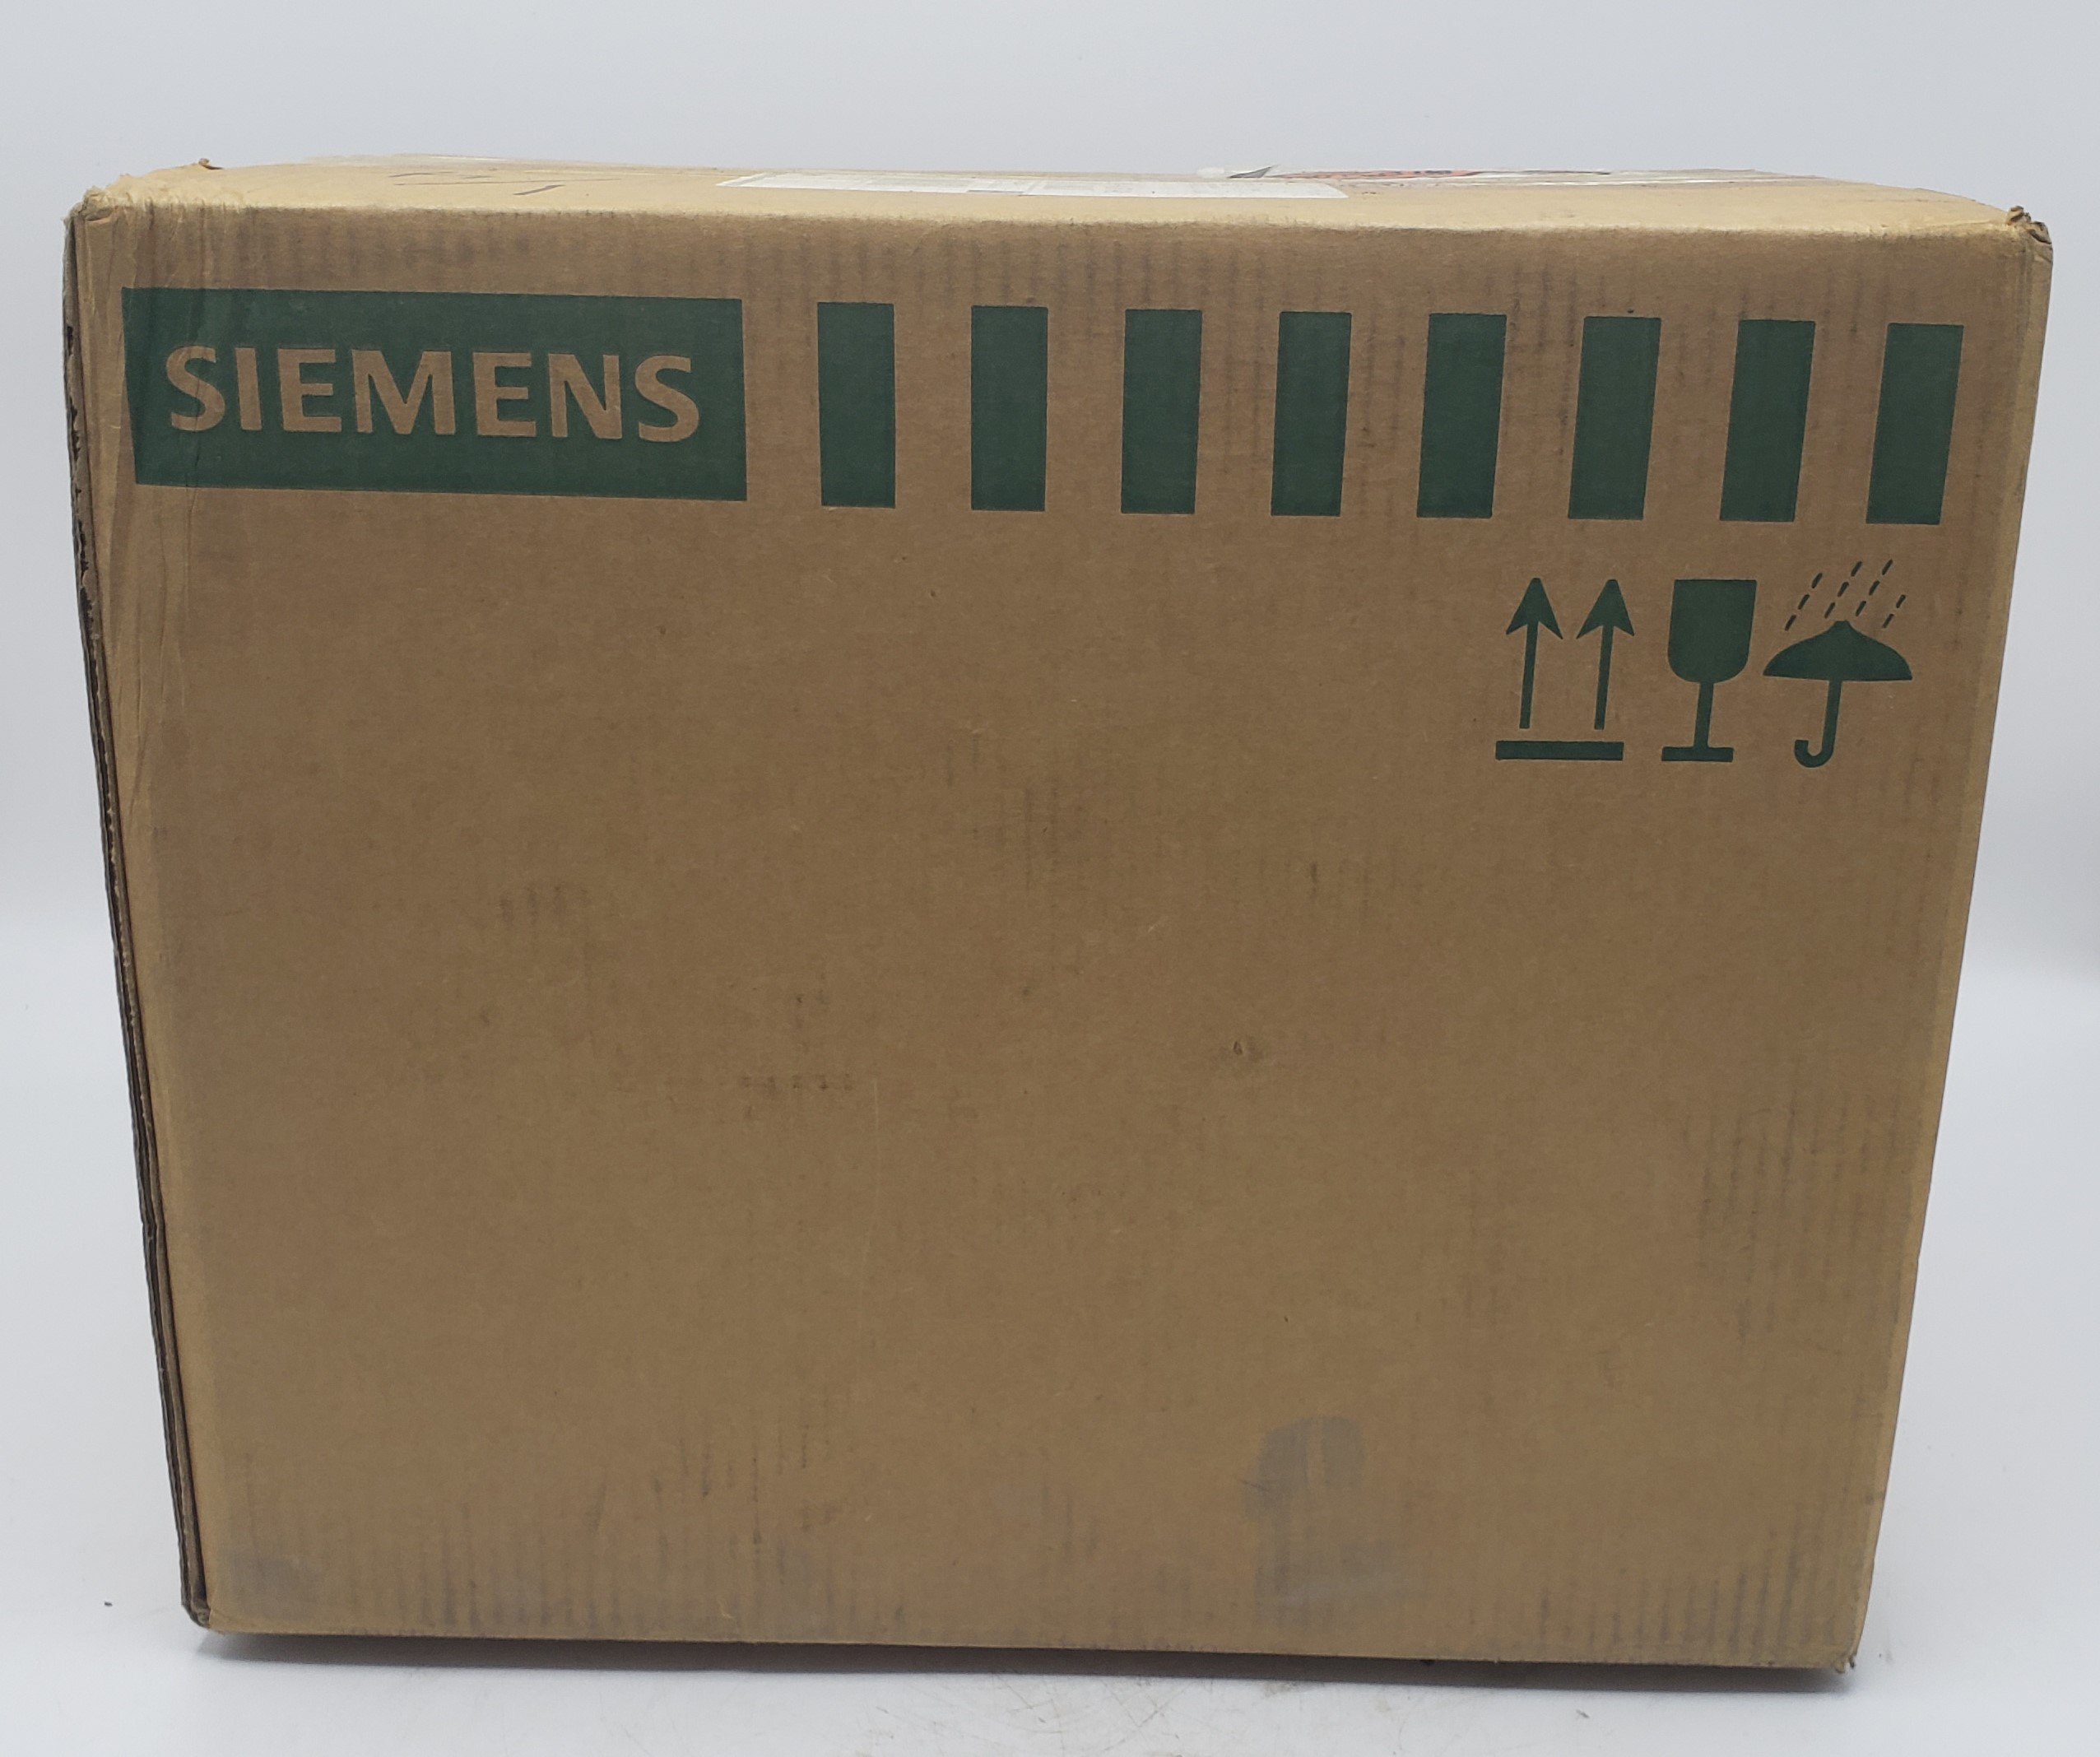 Siemens SLVBH3610G 30 Amp 600 Volts Bus Plug New in Box